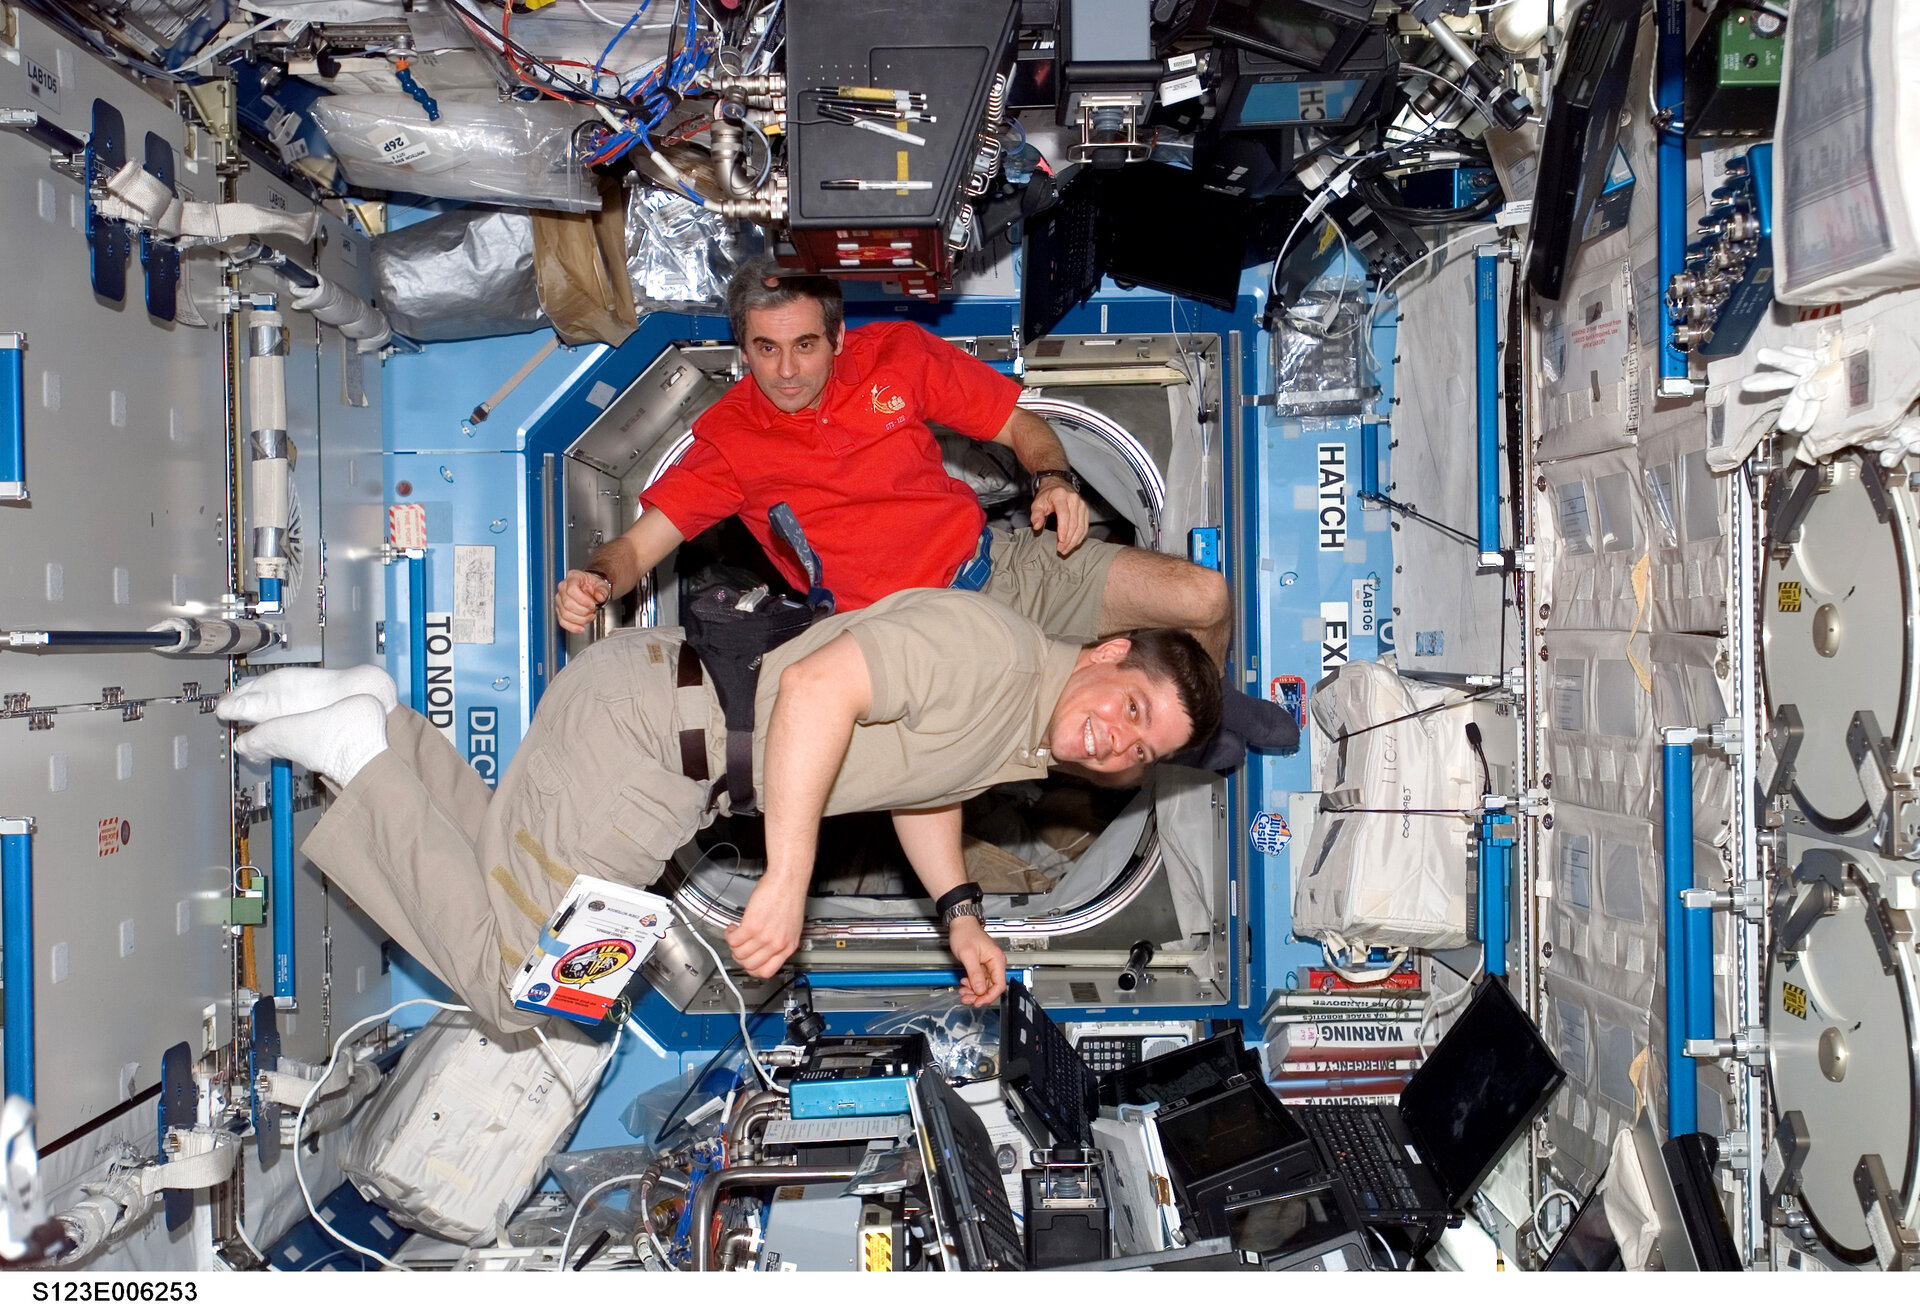 Leopold Eyharts and Bob Behnken at the controls of the ISS robotic arm